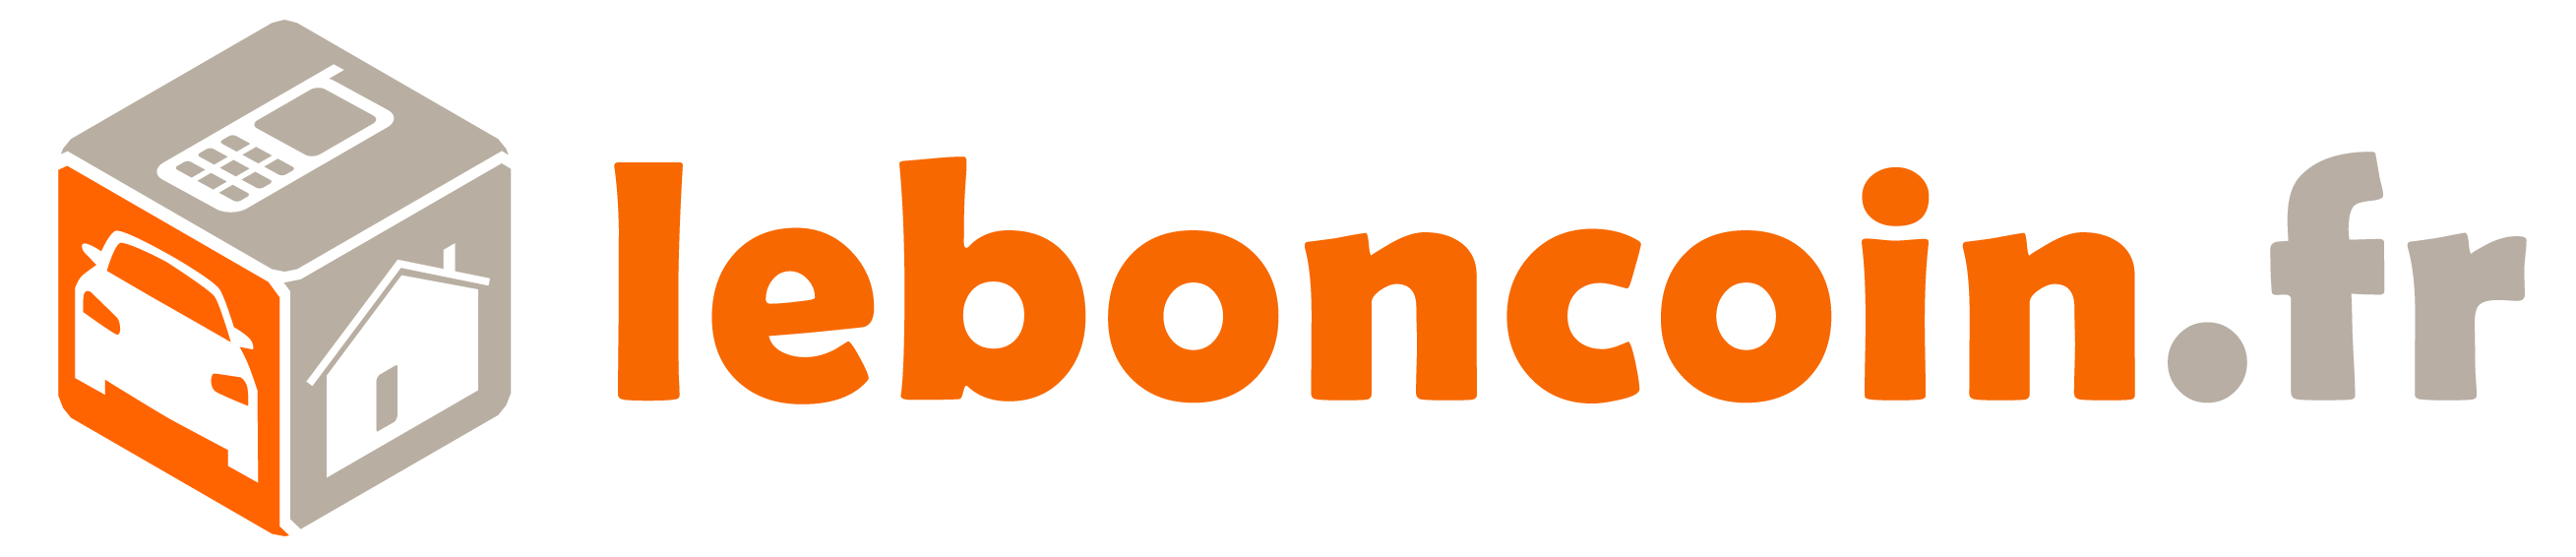 immobilier leboncoin